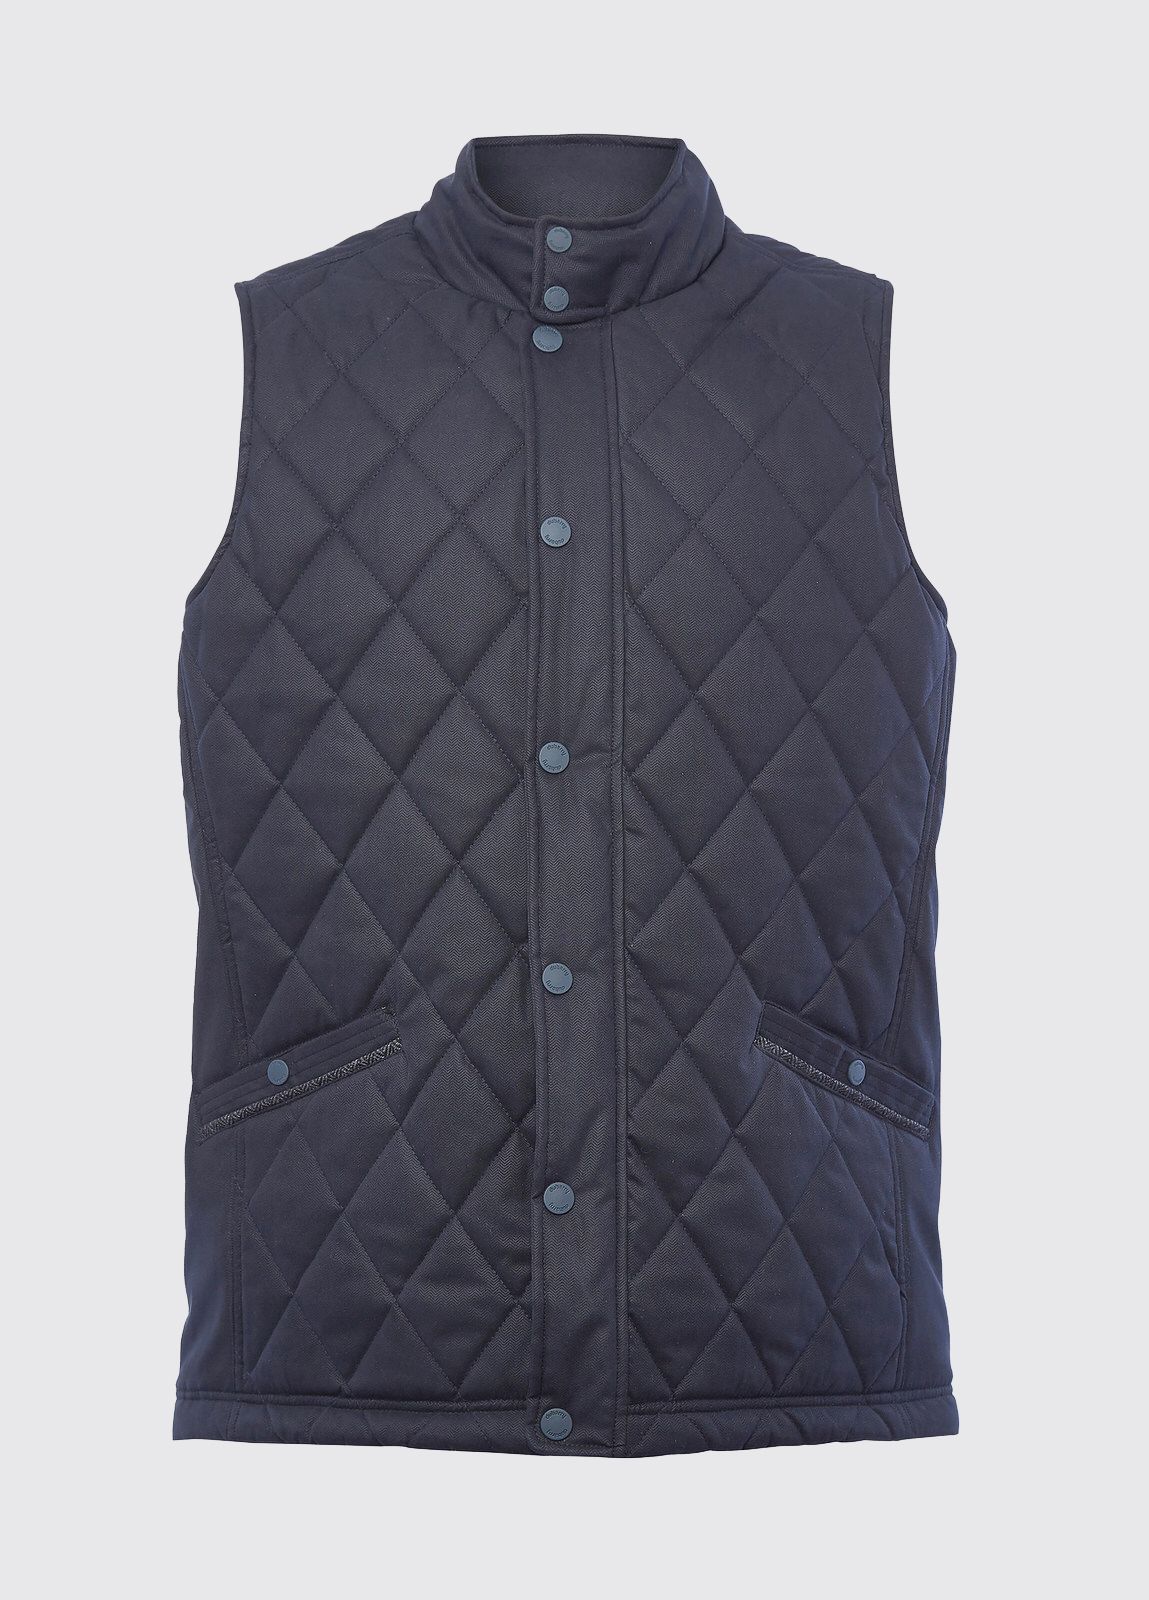 Clarke Quilted Gilet - Navy